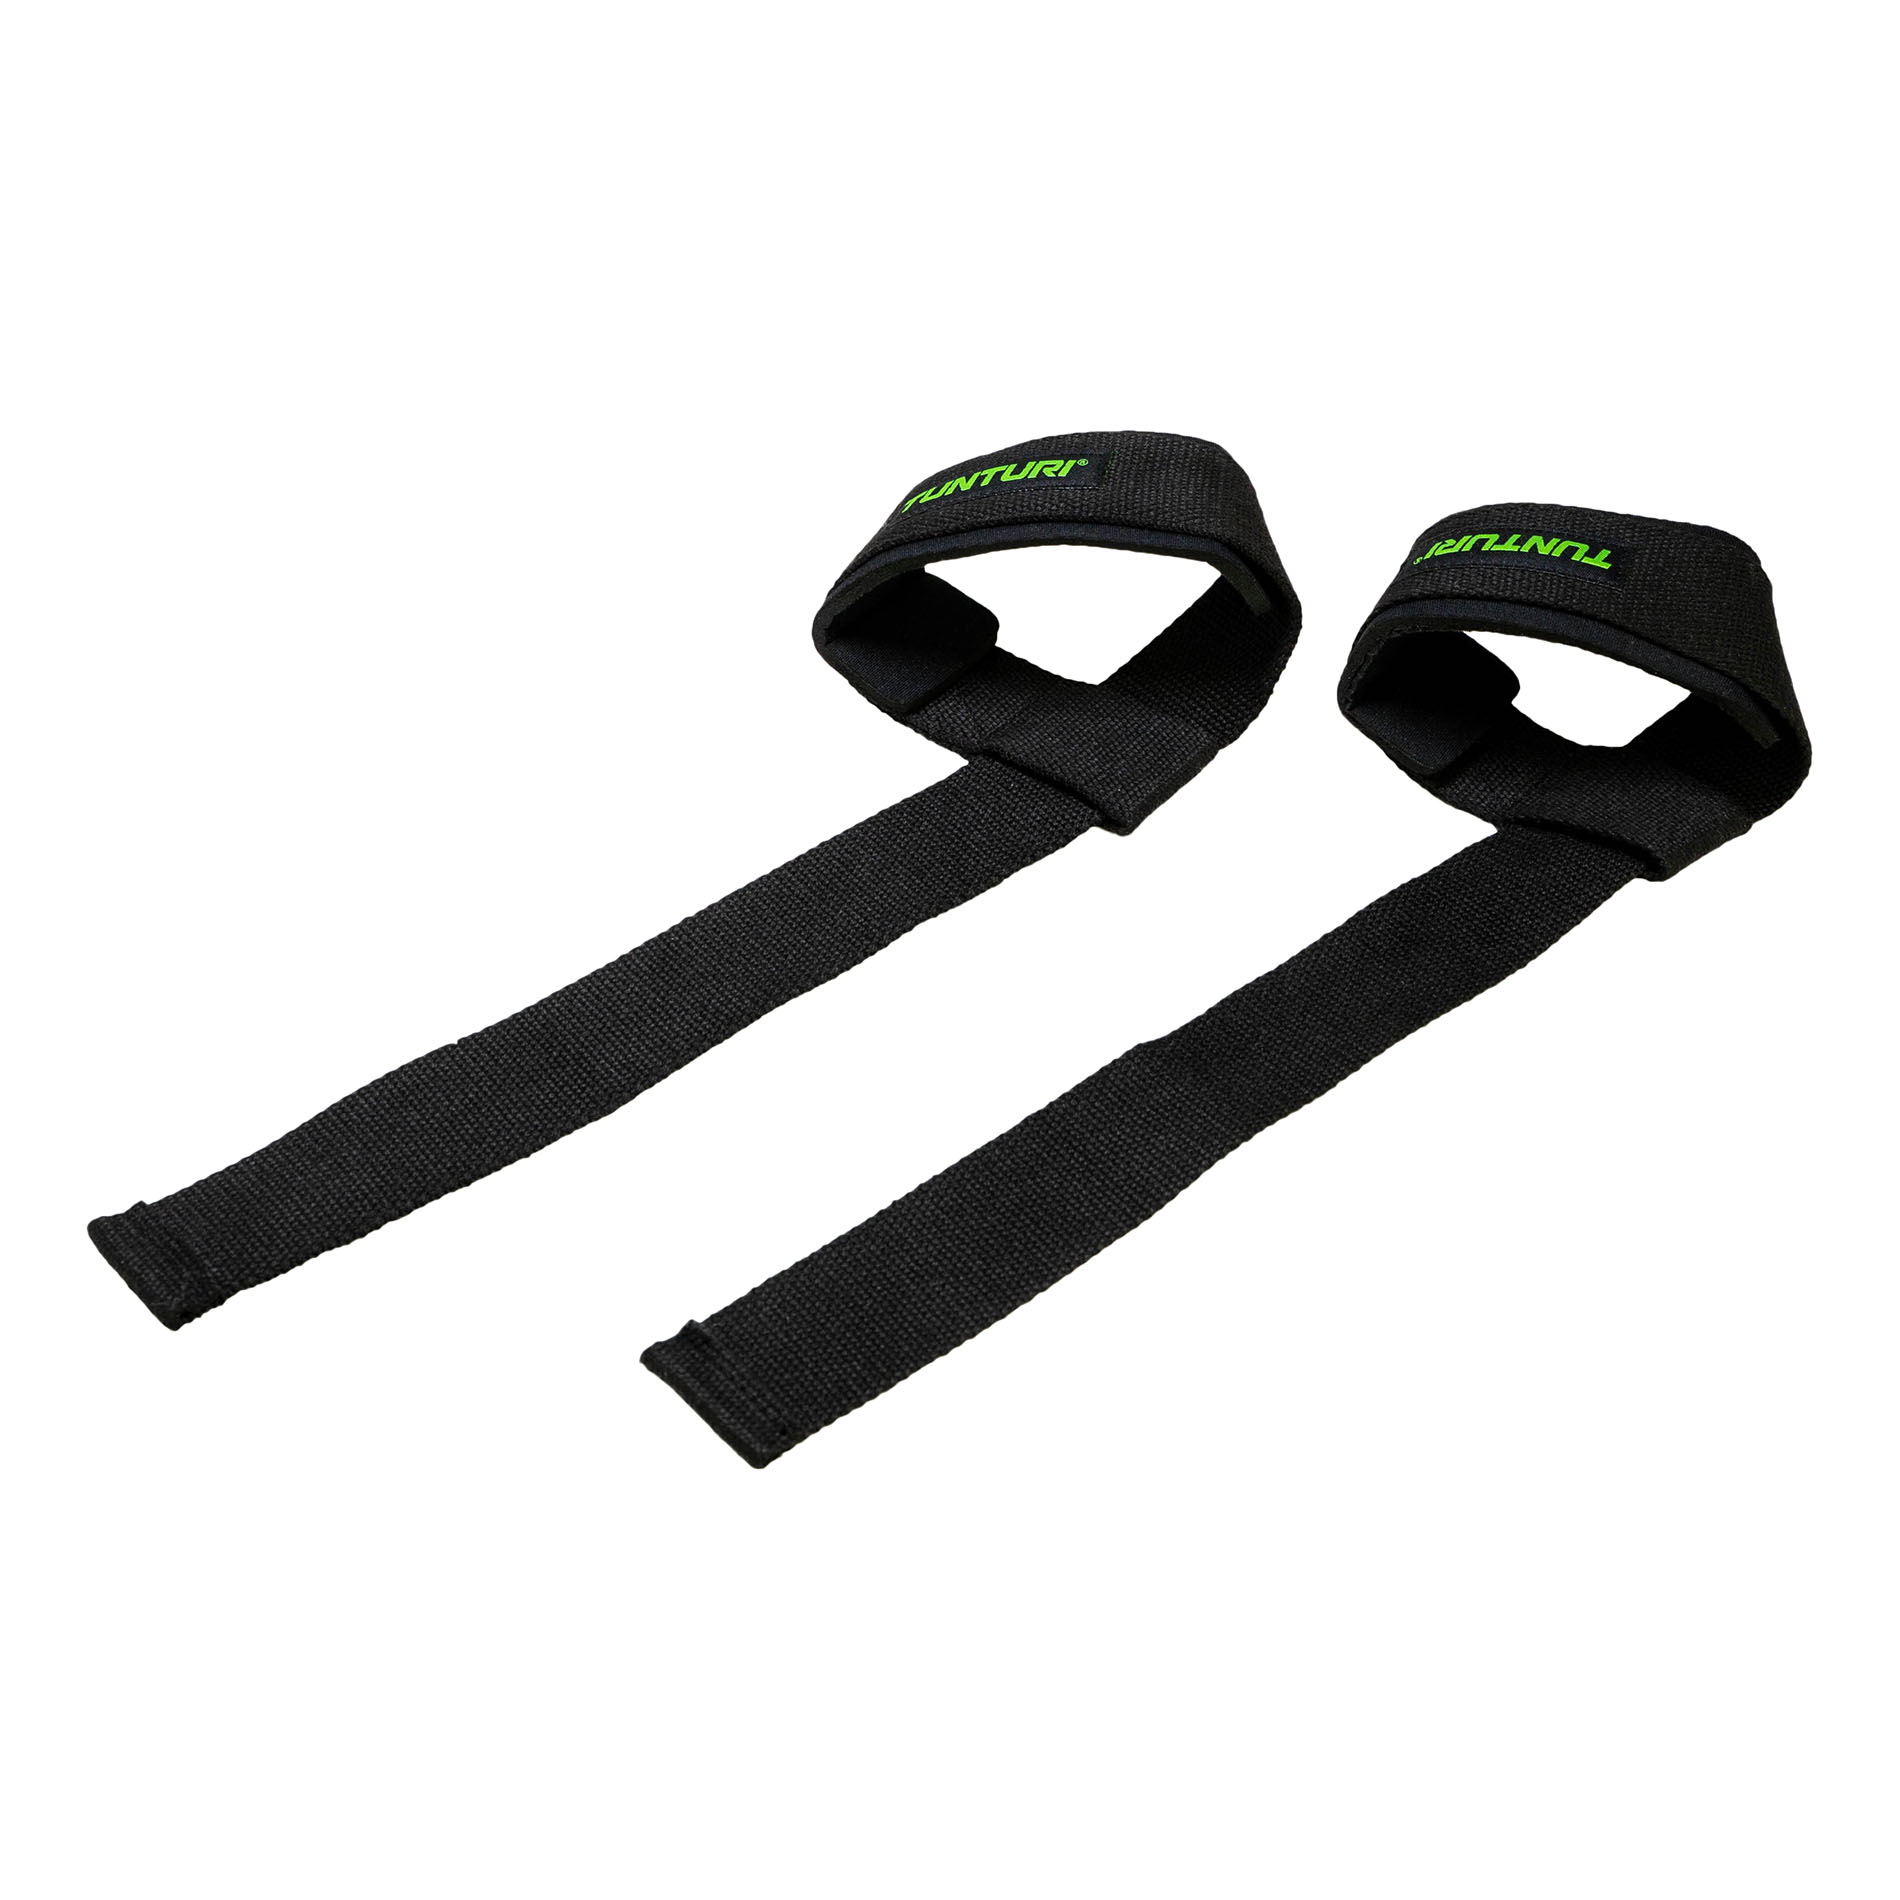 Lifting Straps - wrist straps - Padded